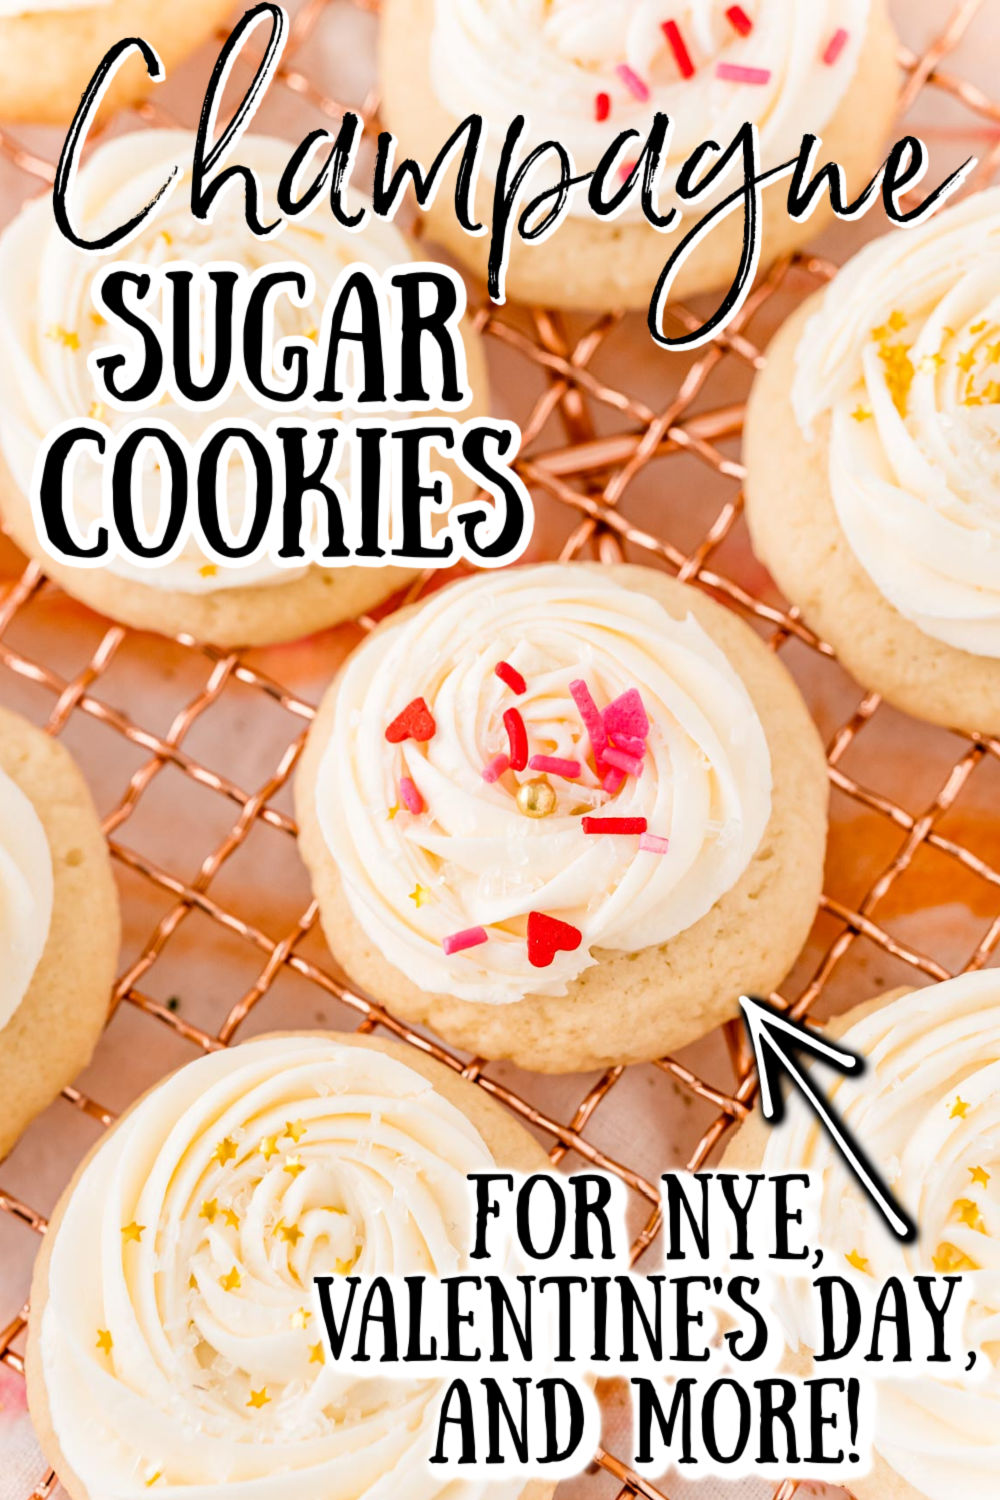 Champagne Sugar Cookies are an amazingly light and fluffy cookie topped with a silky and luxurious champagne buttercream frosting! These cookies are perfect for New Year's Eve, but can also be enjoyed while cuddled up next to the one you love on Valentine's Day or when celebrating the new bride!  via @sugarandsoulco